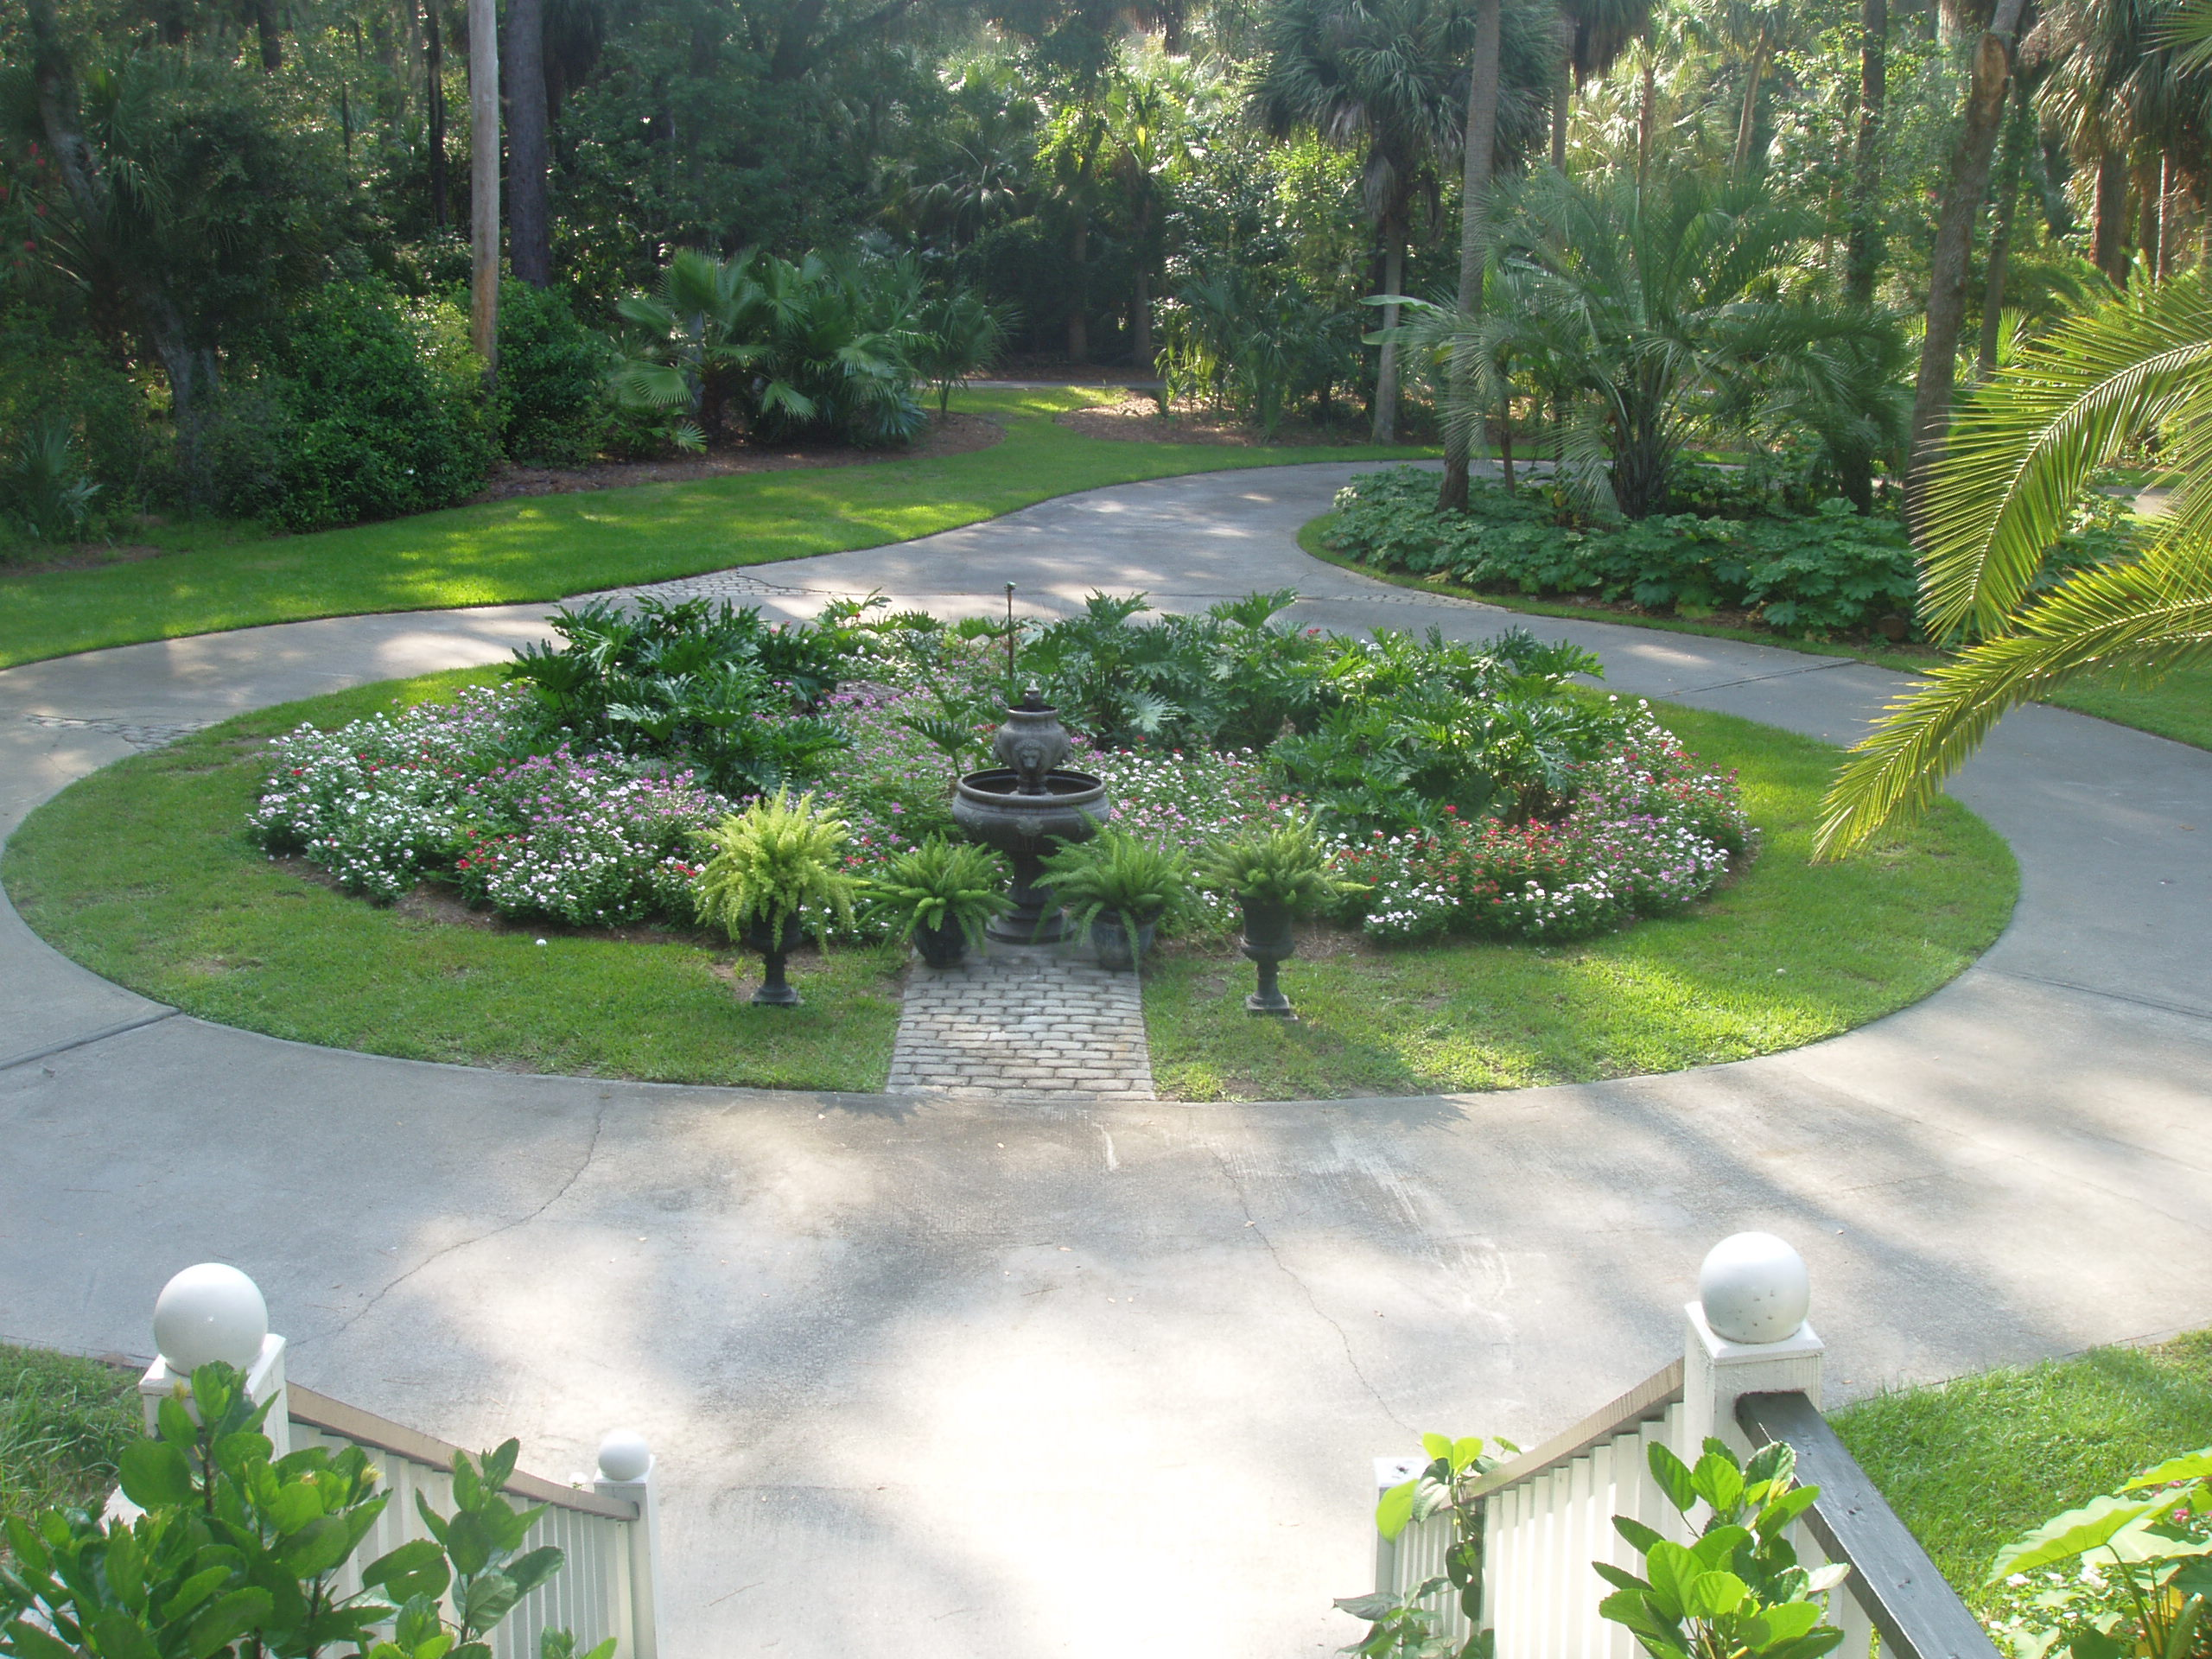 Circular driveway dempsey land design for Land design landscaping